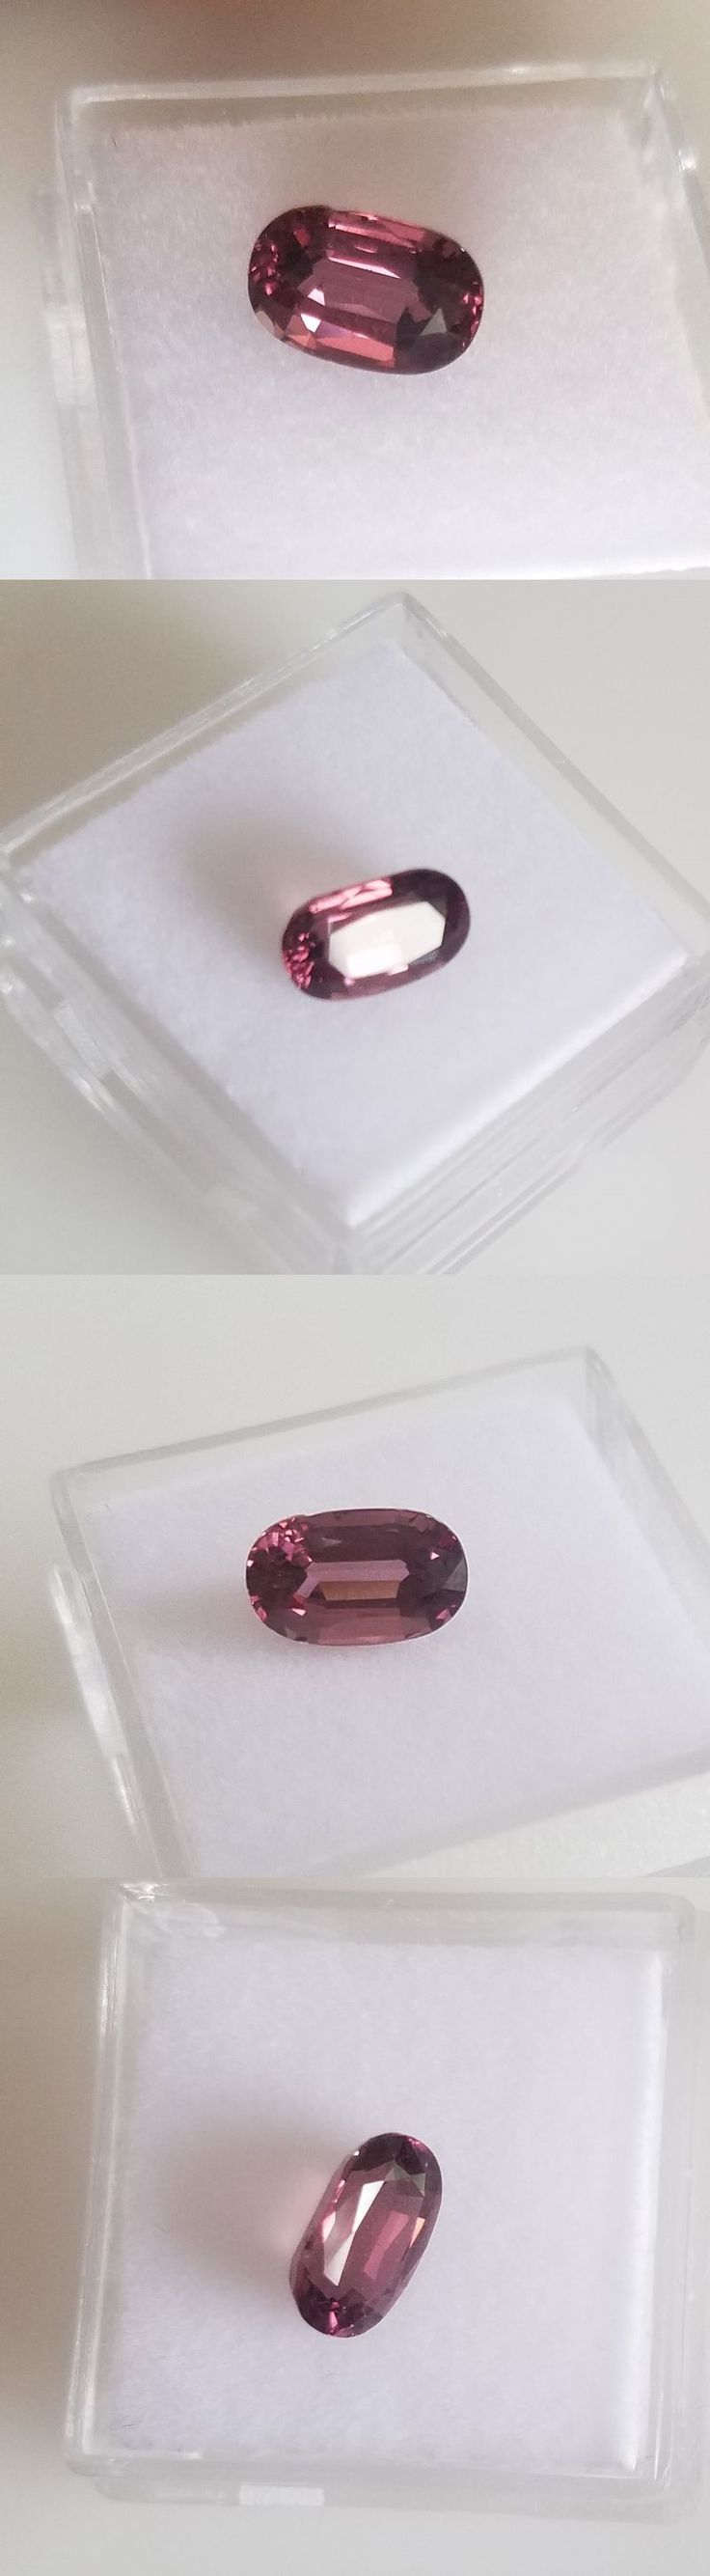 Spinel 110873: 1.81 Carat Genuine Natural Rose Spinel Loose Stone Oval Shape -> BUY IT NOW ONLY: $329 on eBay!